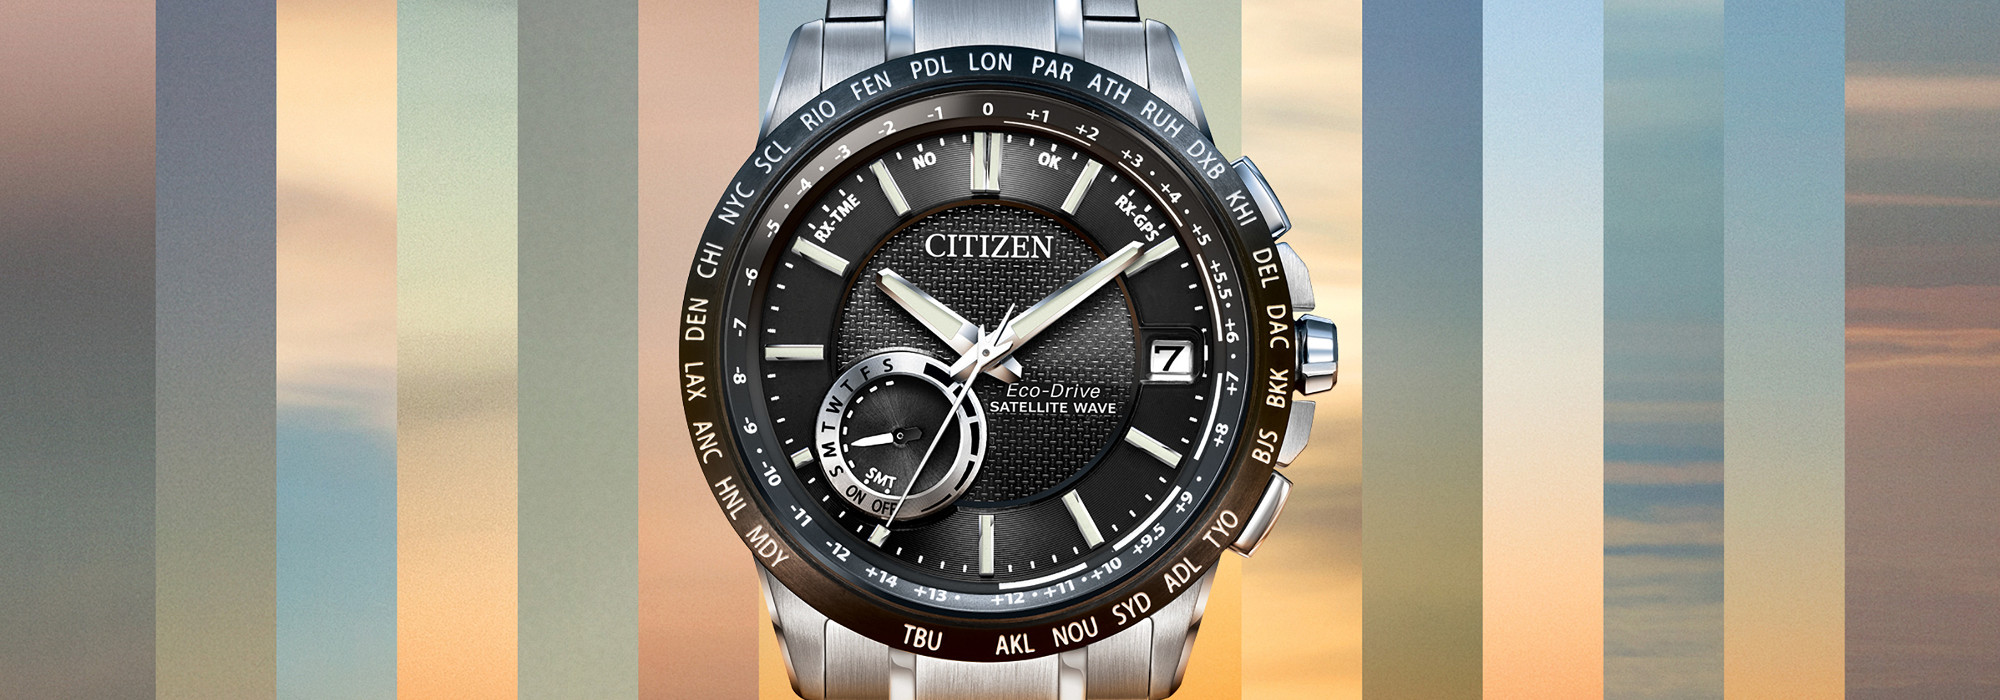 Citizen Watch cc3005 | Benjamin Jewelers | Bozeman, MT